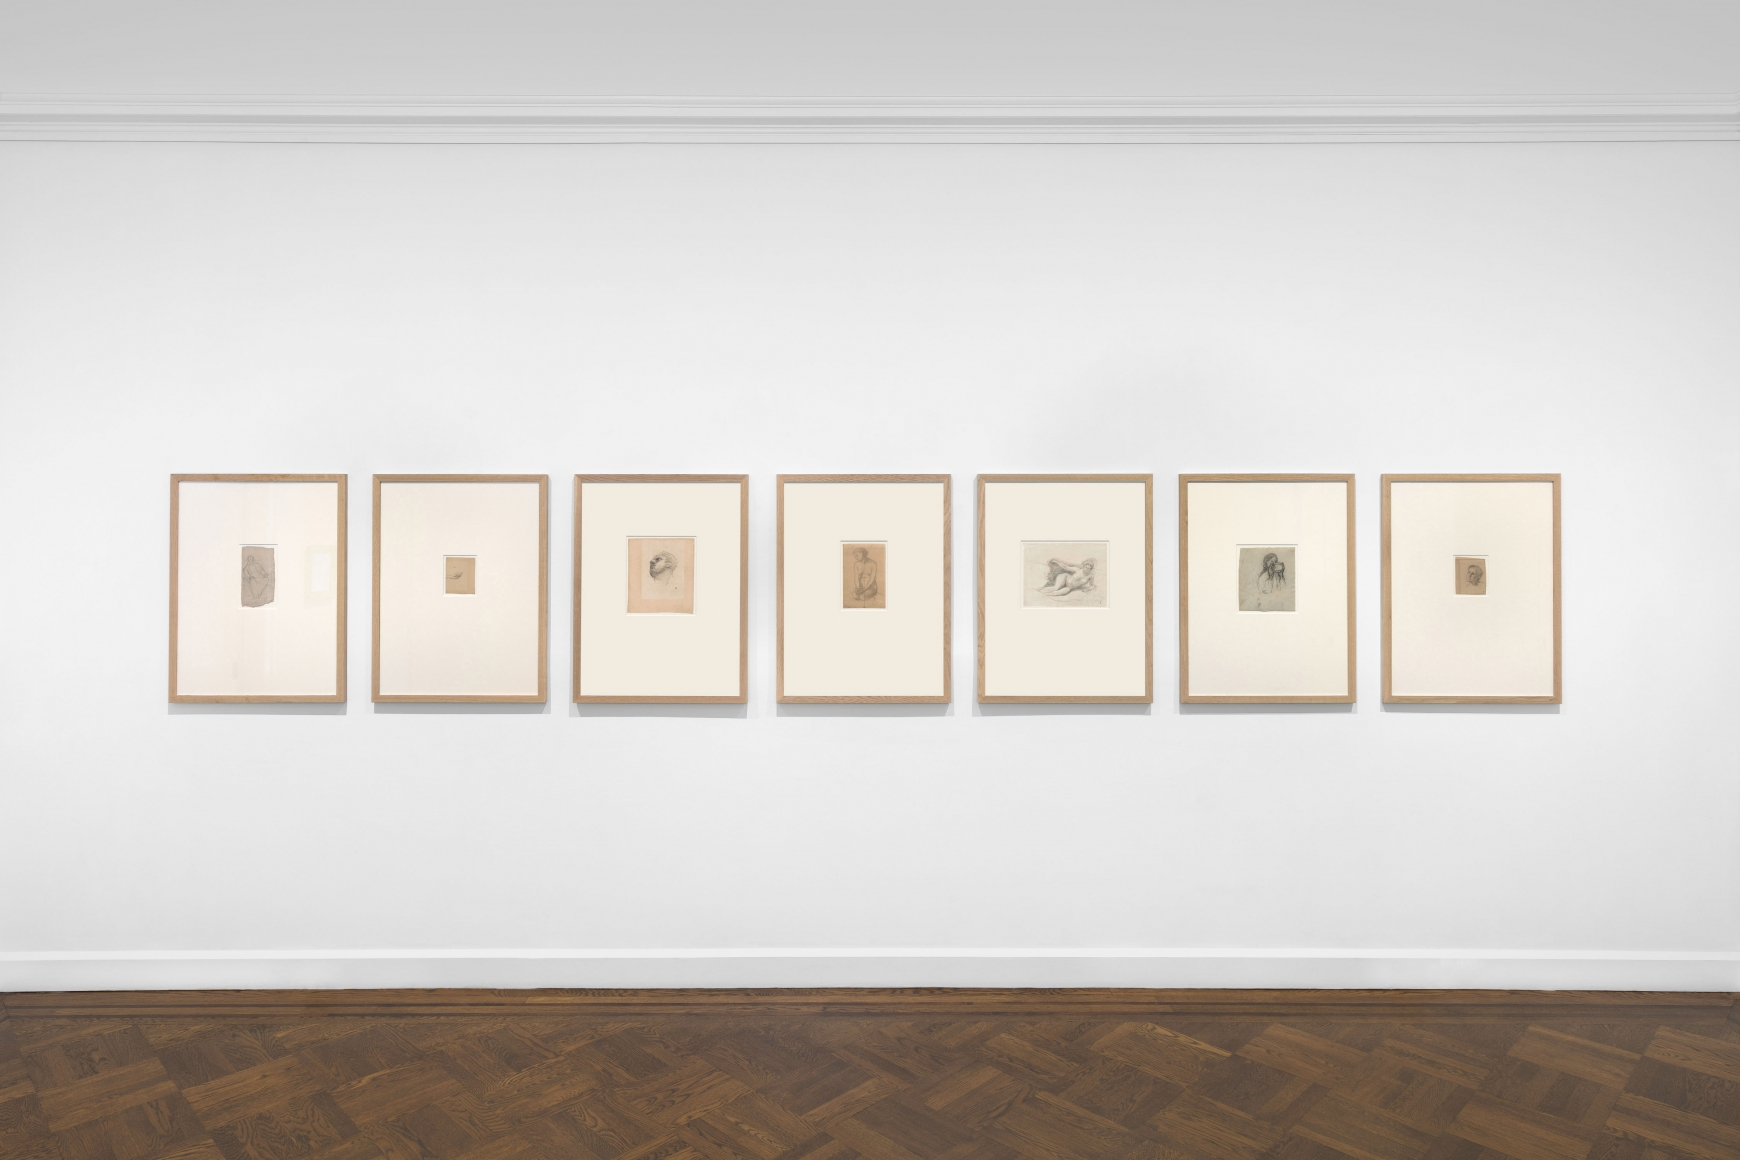 PIERRE PUVIS DE CHAVANNES, Works on Paper and Paintings, New York, 2018, Installation Image 17